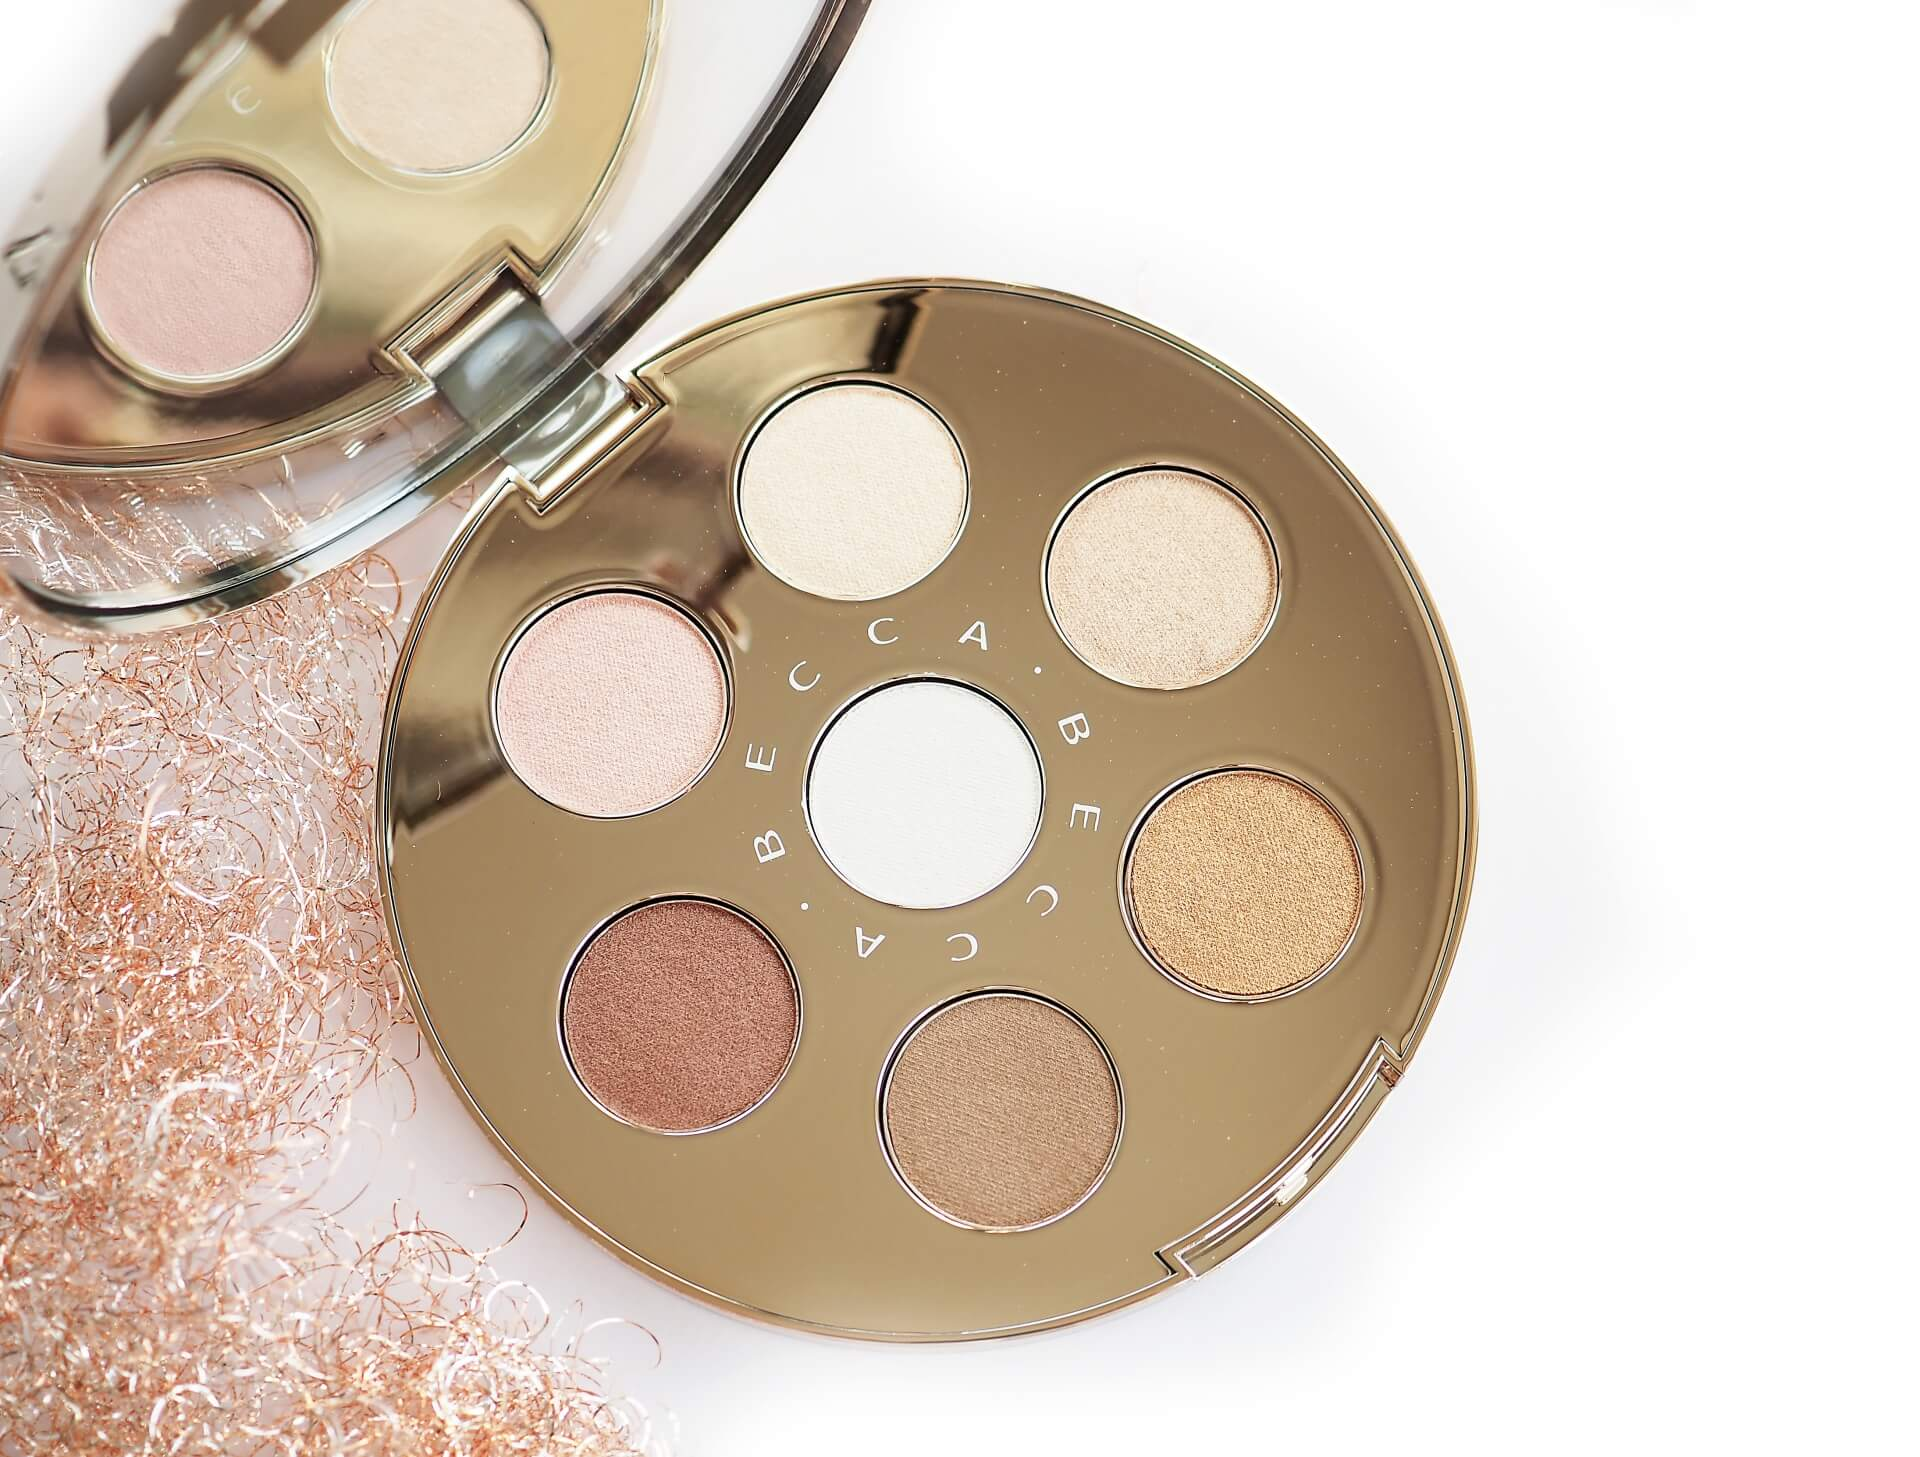 Becca Eye Light Palette